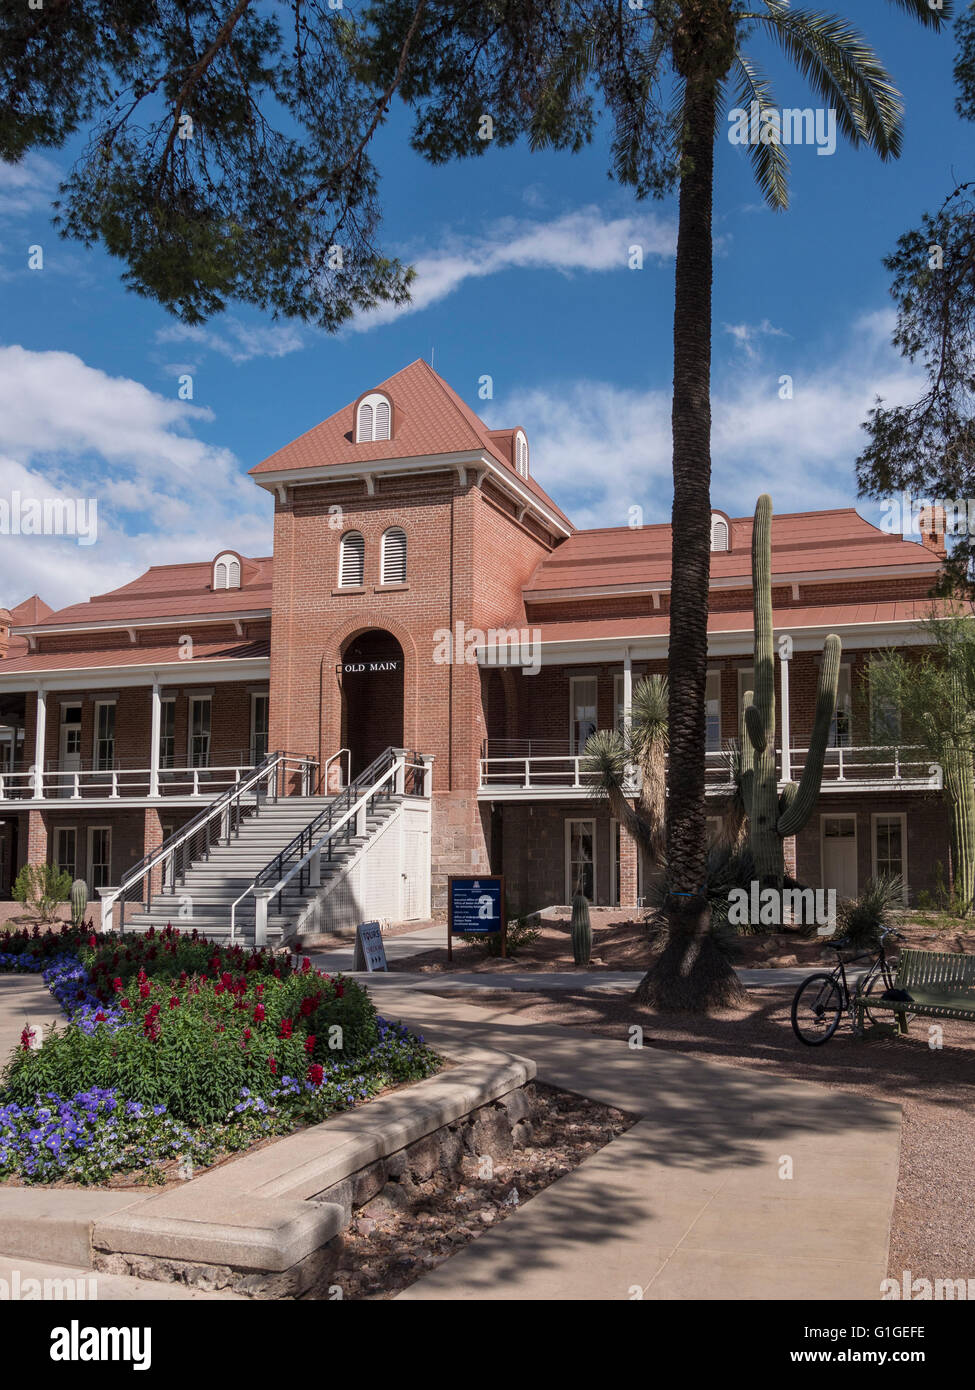 Old Main building, University of Arizona, Tucson, Arizona Stock